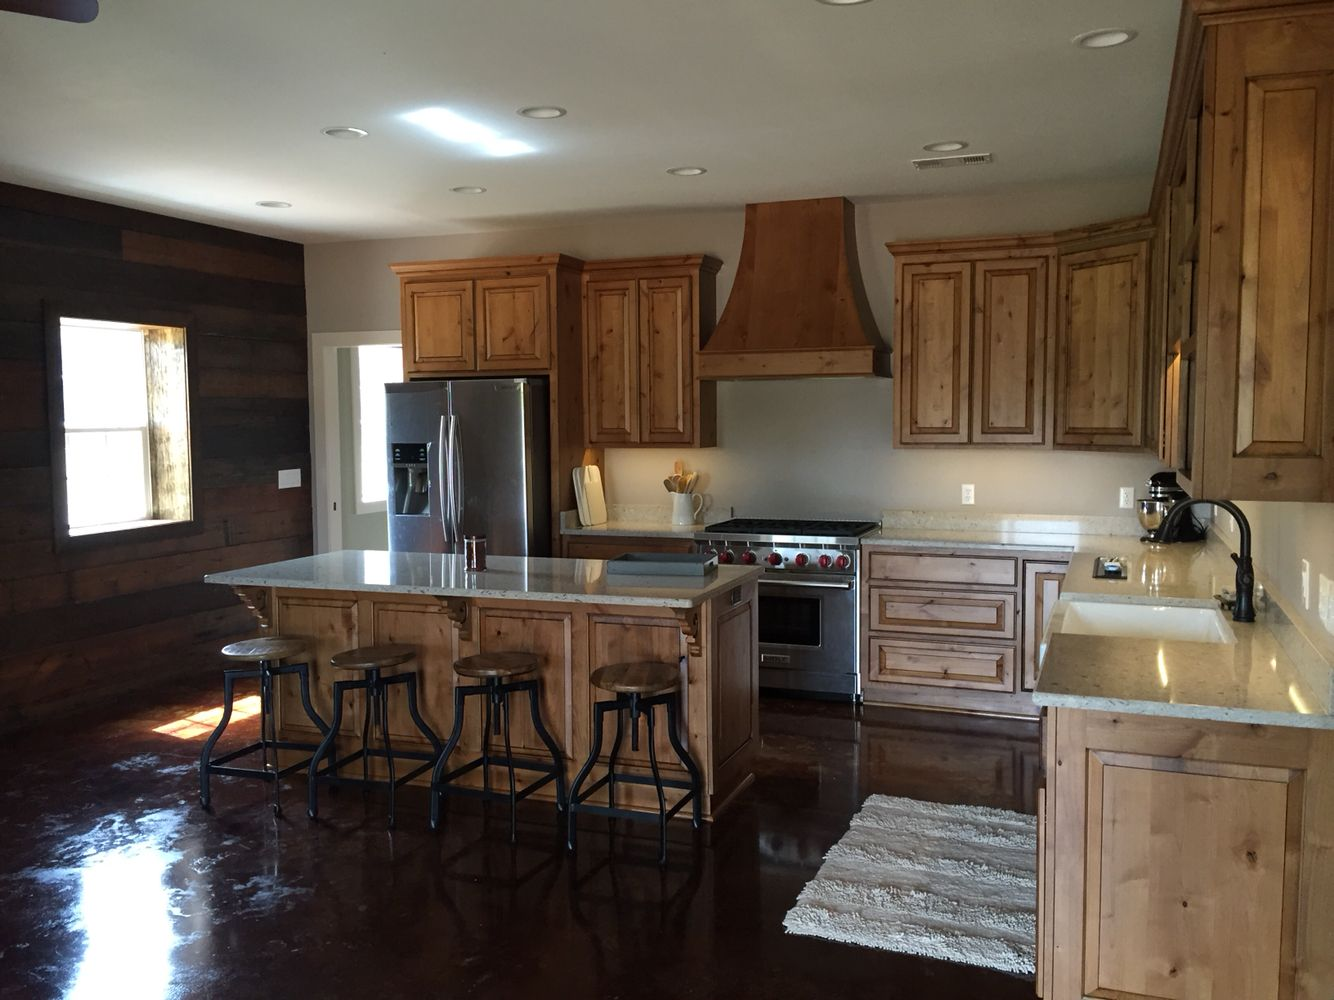 Rustic Knotty Alder Kitchen Cabinetry With Quartz Counter Tops From Cambria